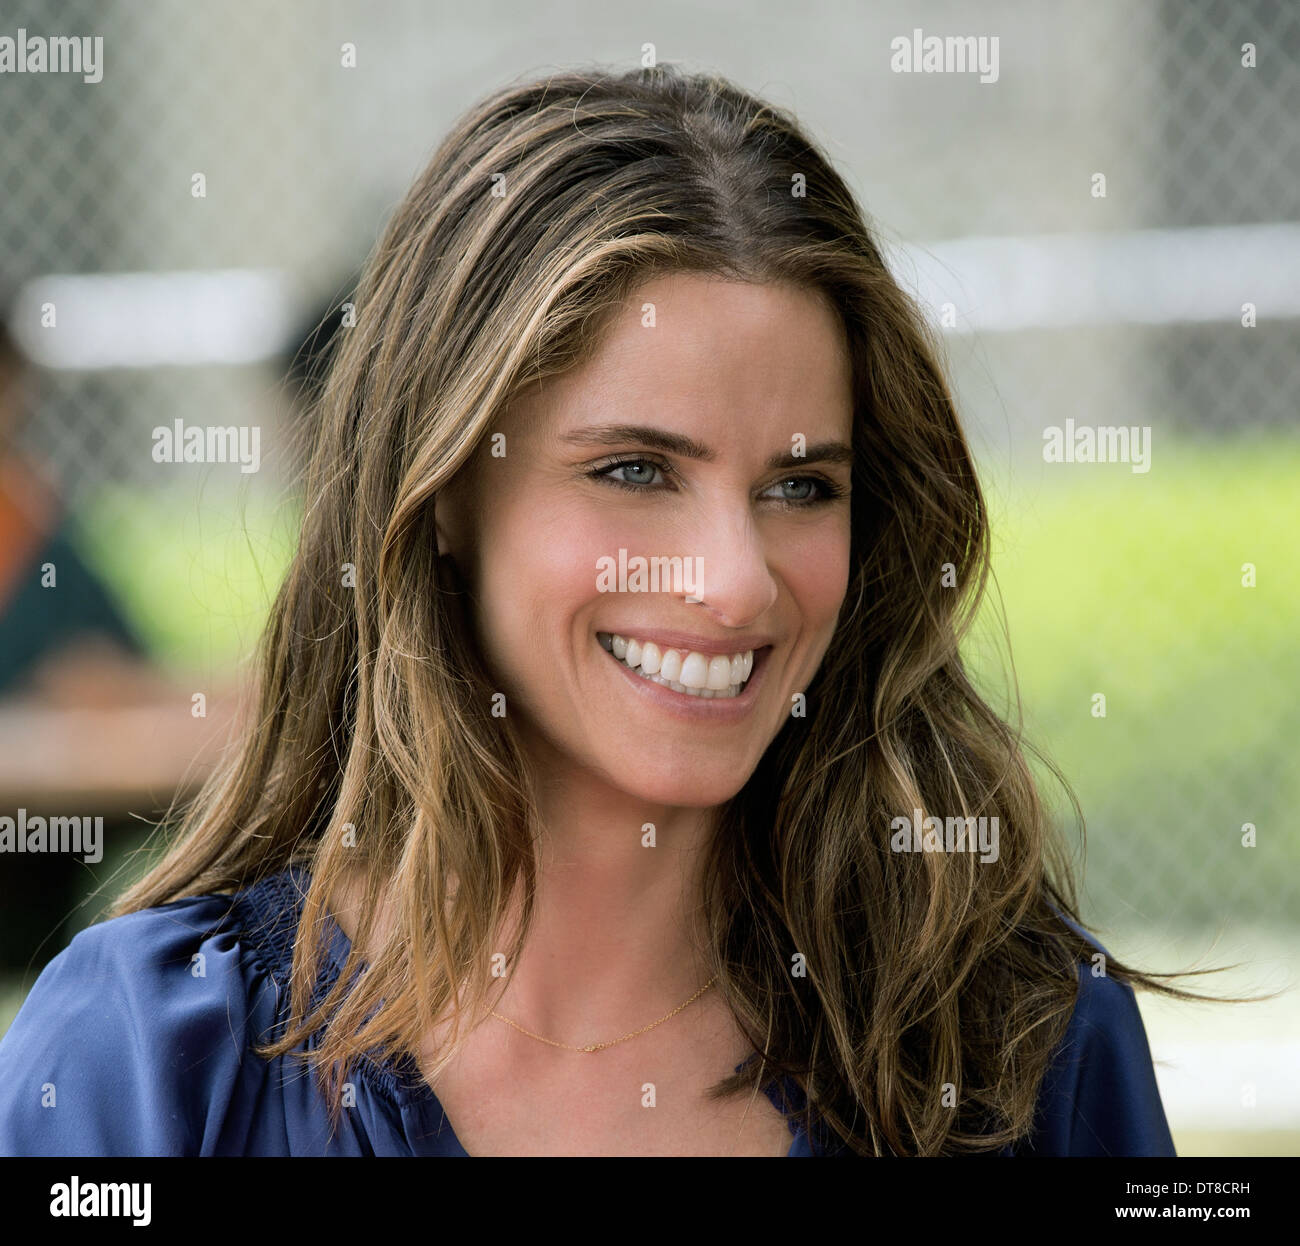 Amanda Peet Identity Thief 2013 Stock Photo Alamy